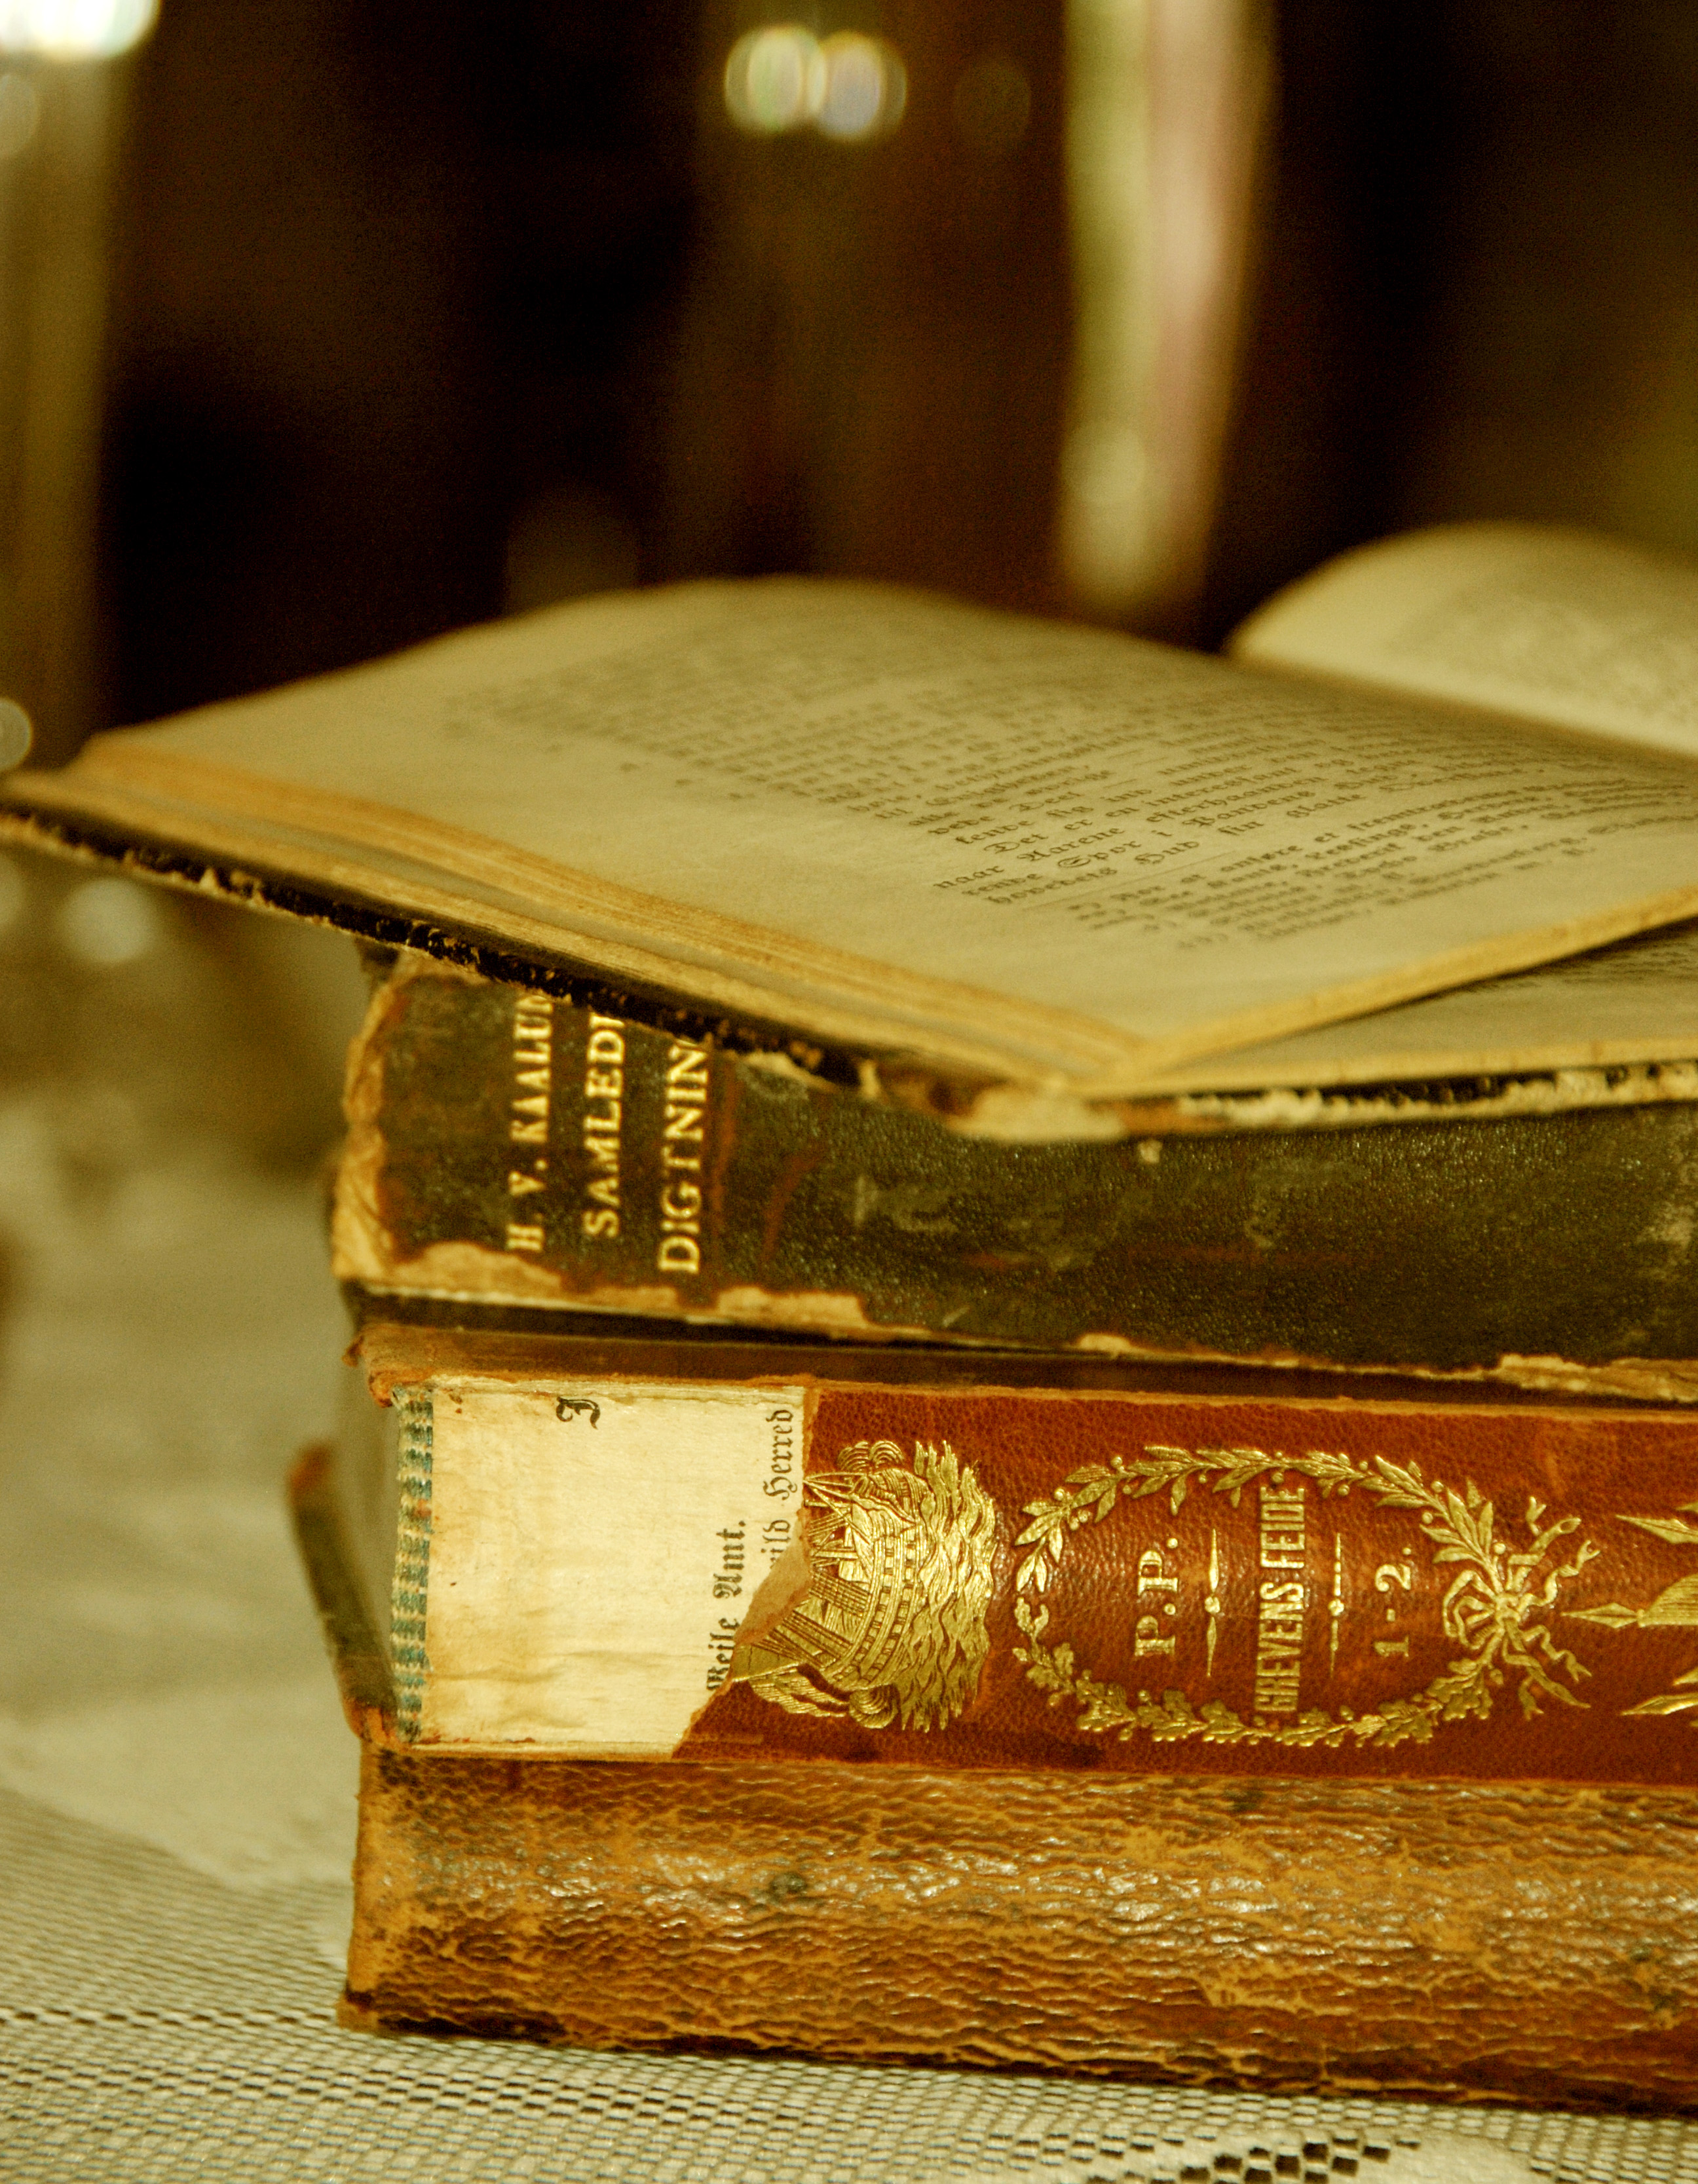 Smell of old books offers clues to help preserve them ...